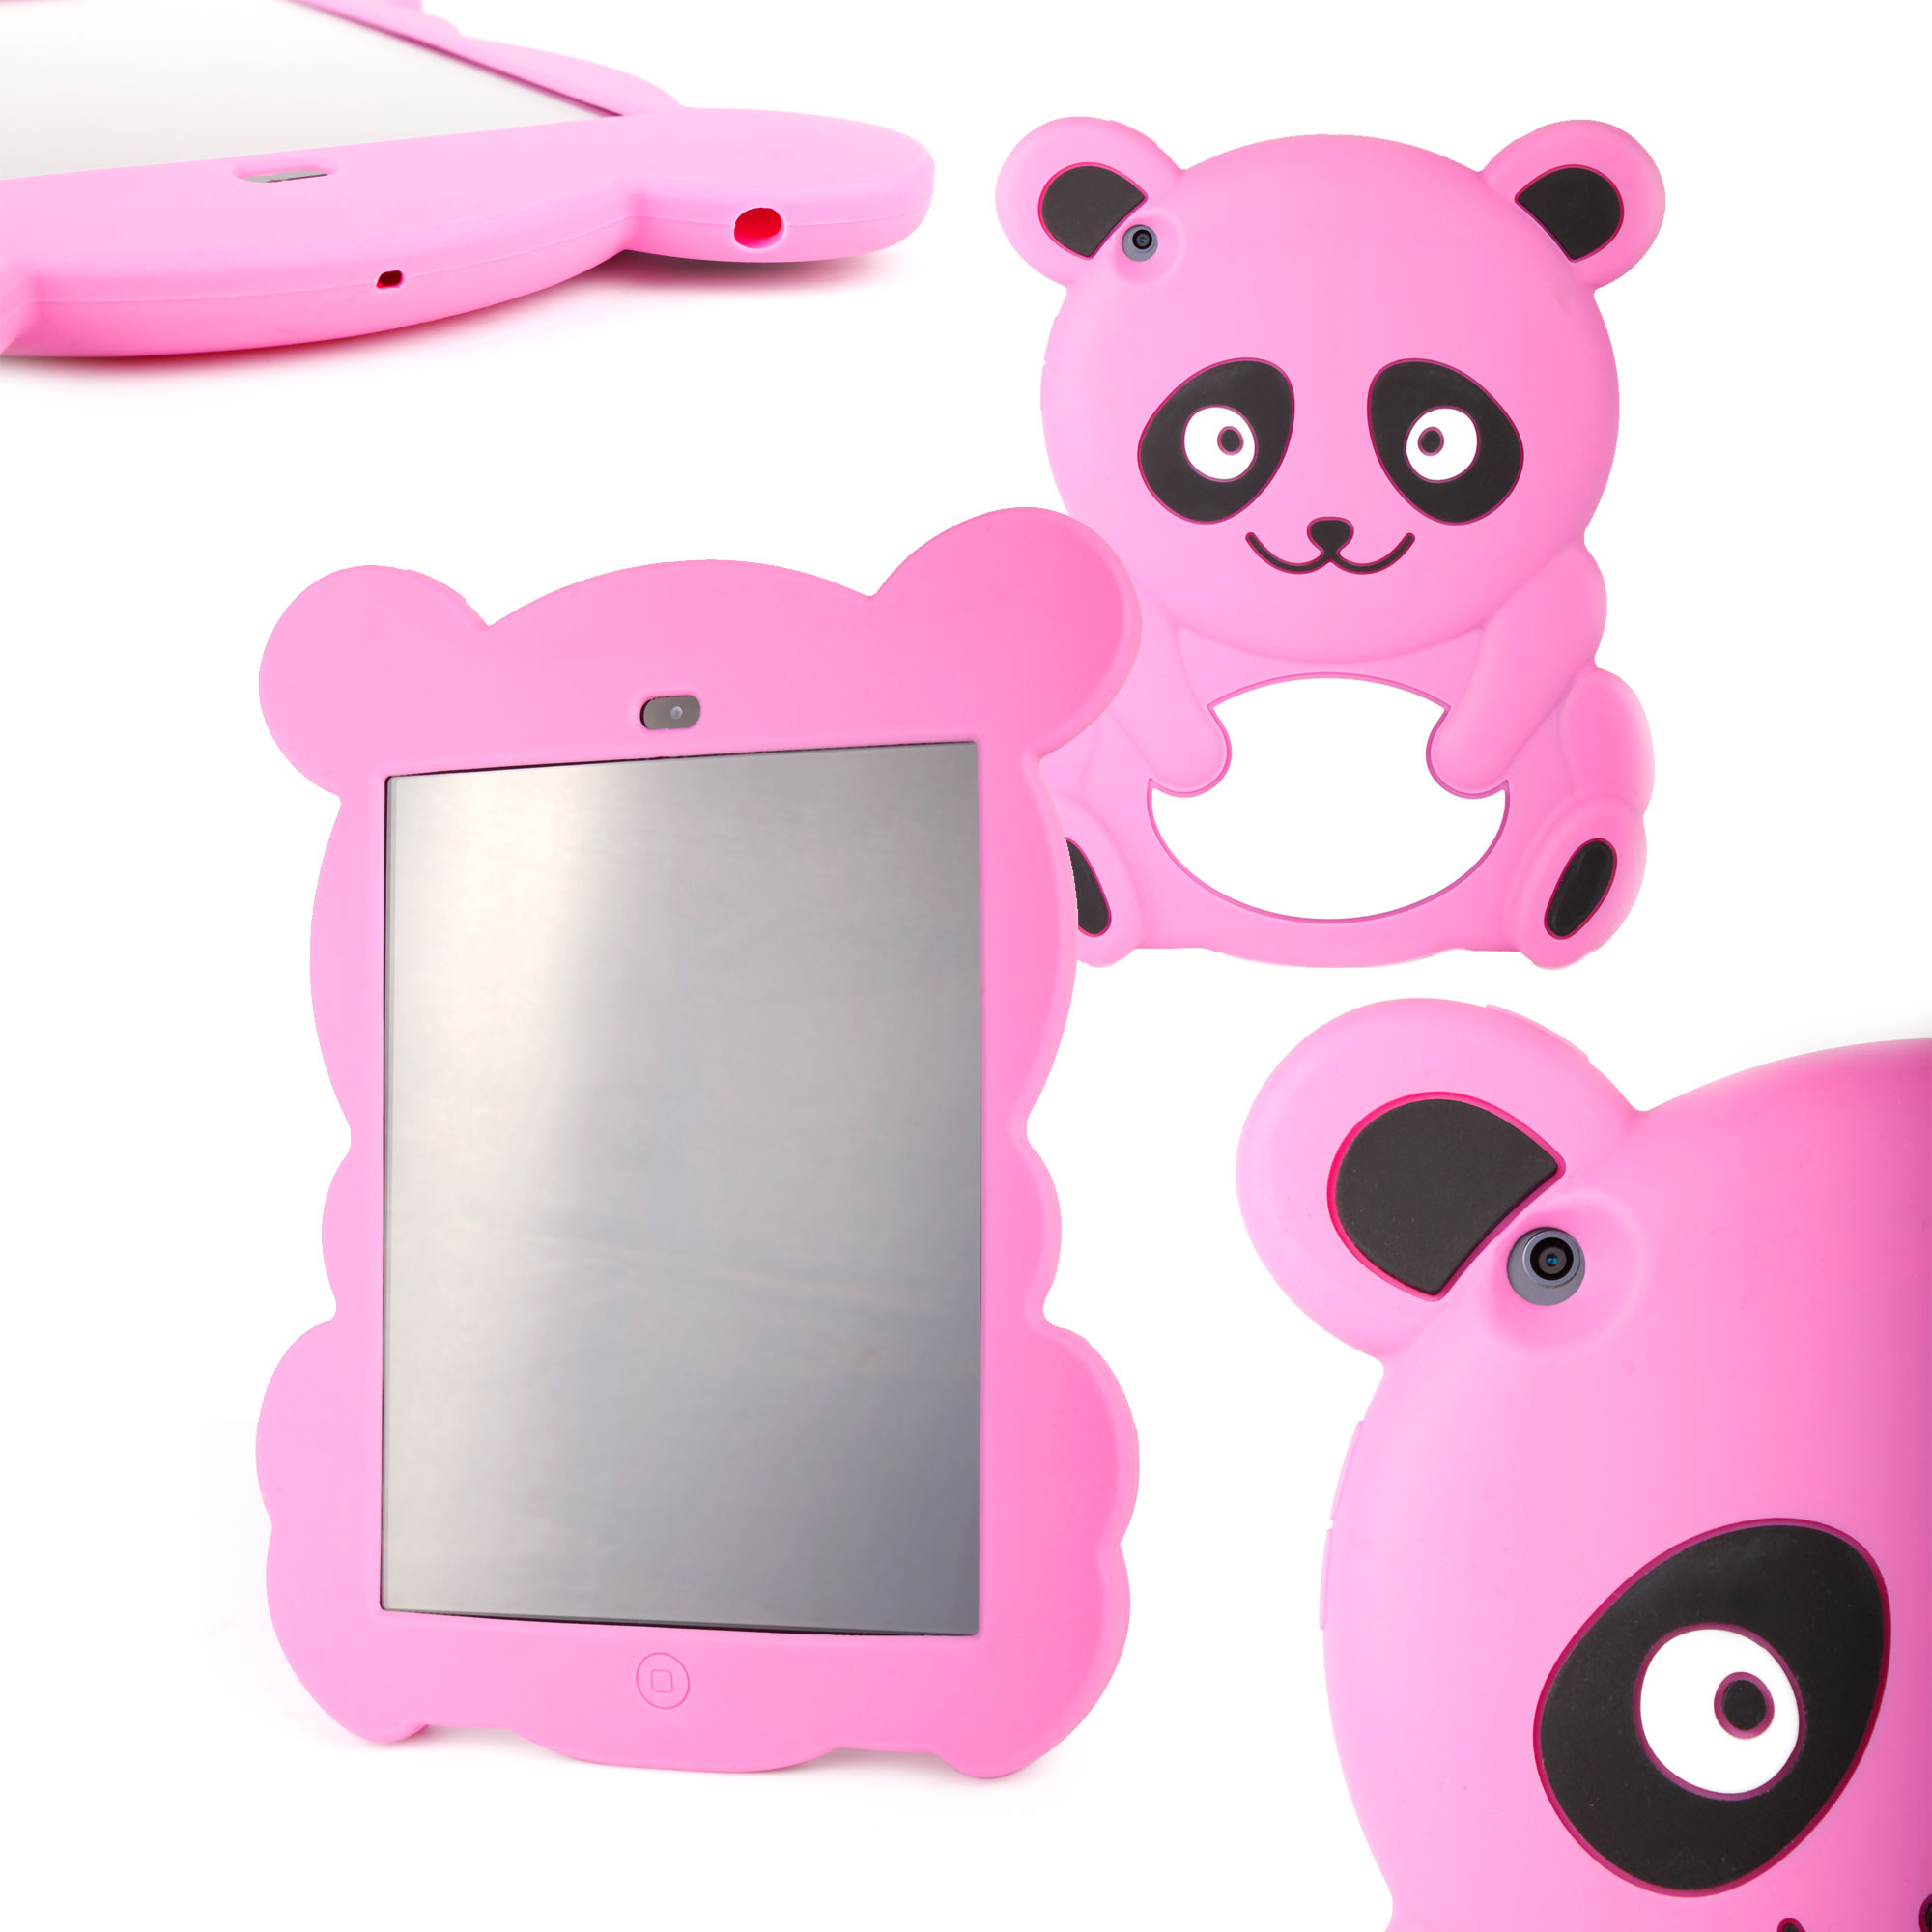 etui coque arri re panda rose pour la tablette apple ipad. Black Bedroom Furniture Sets. Home Design Ideas